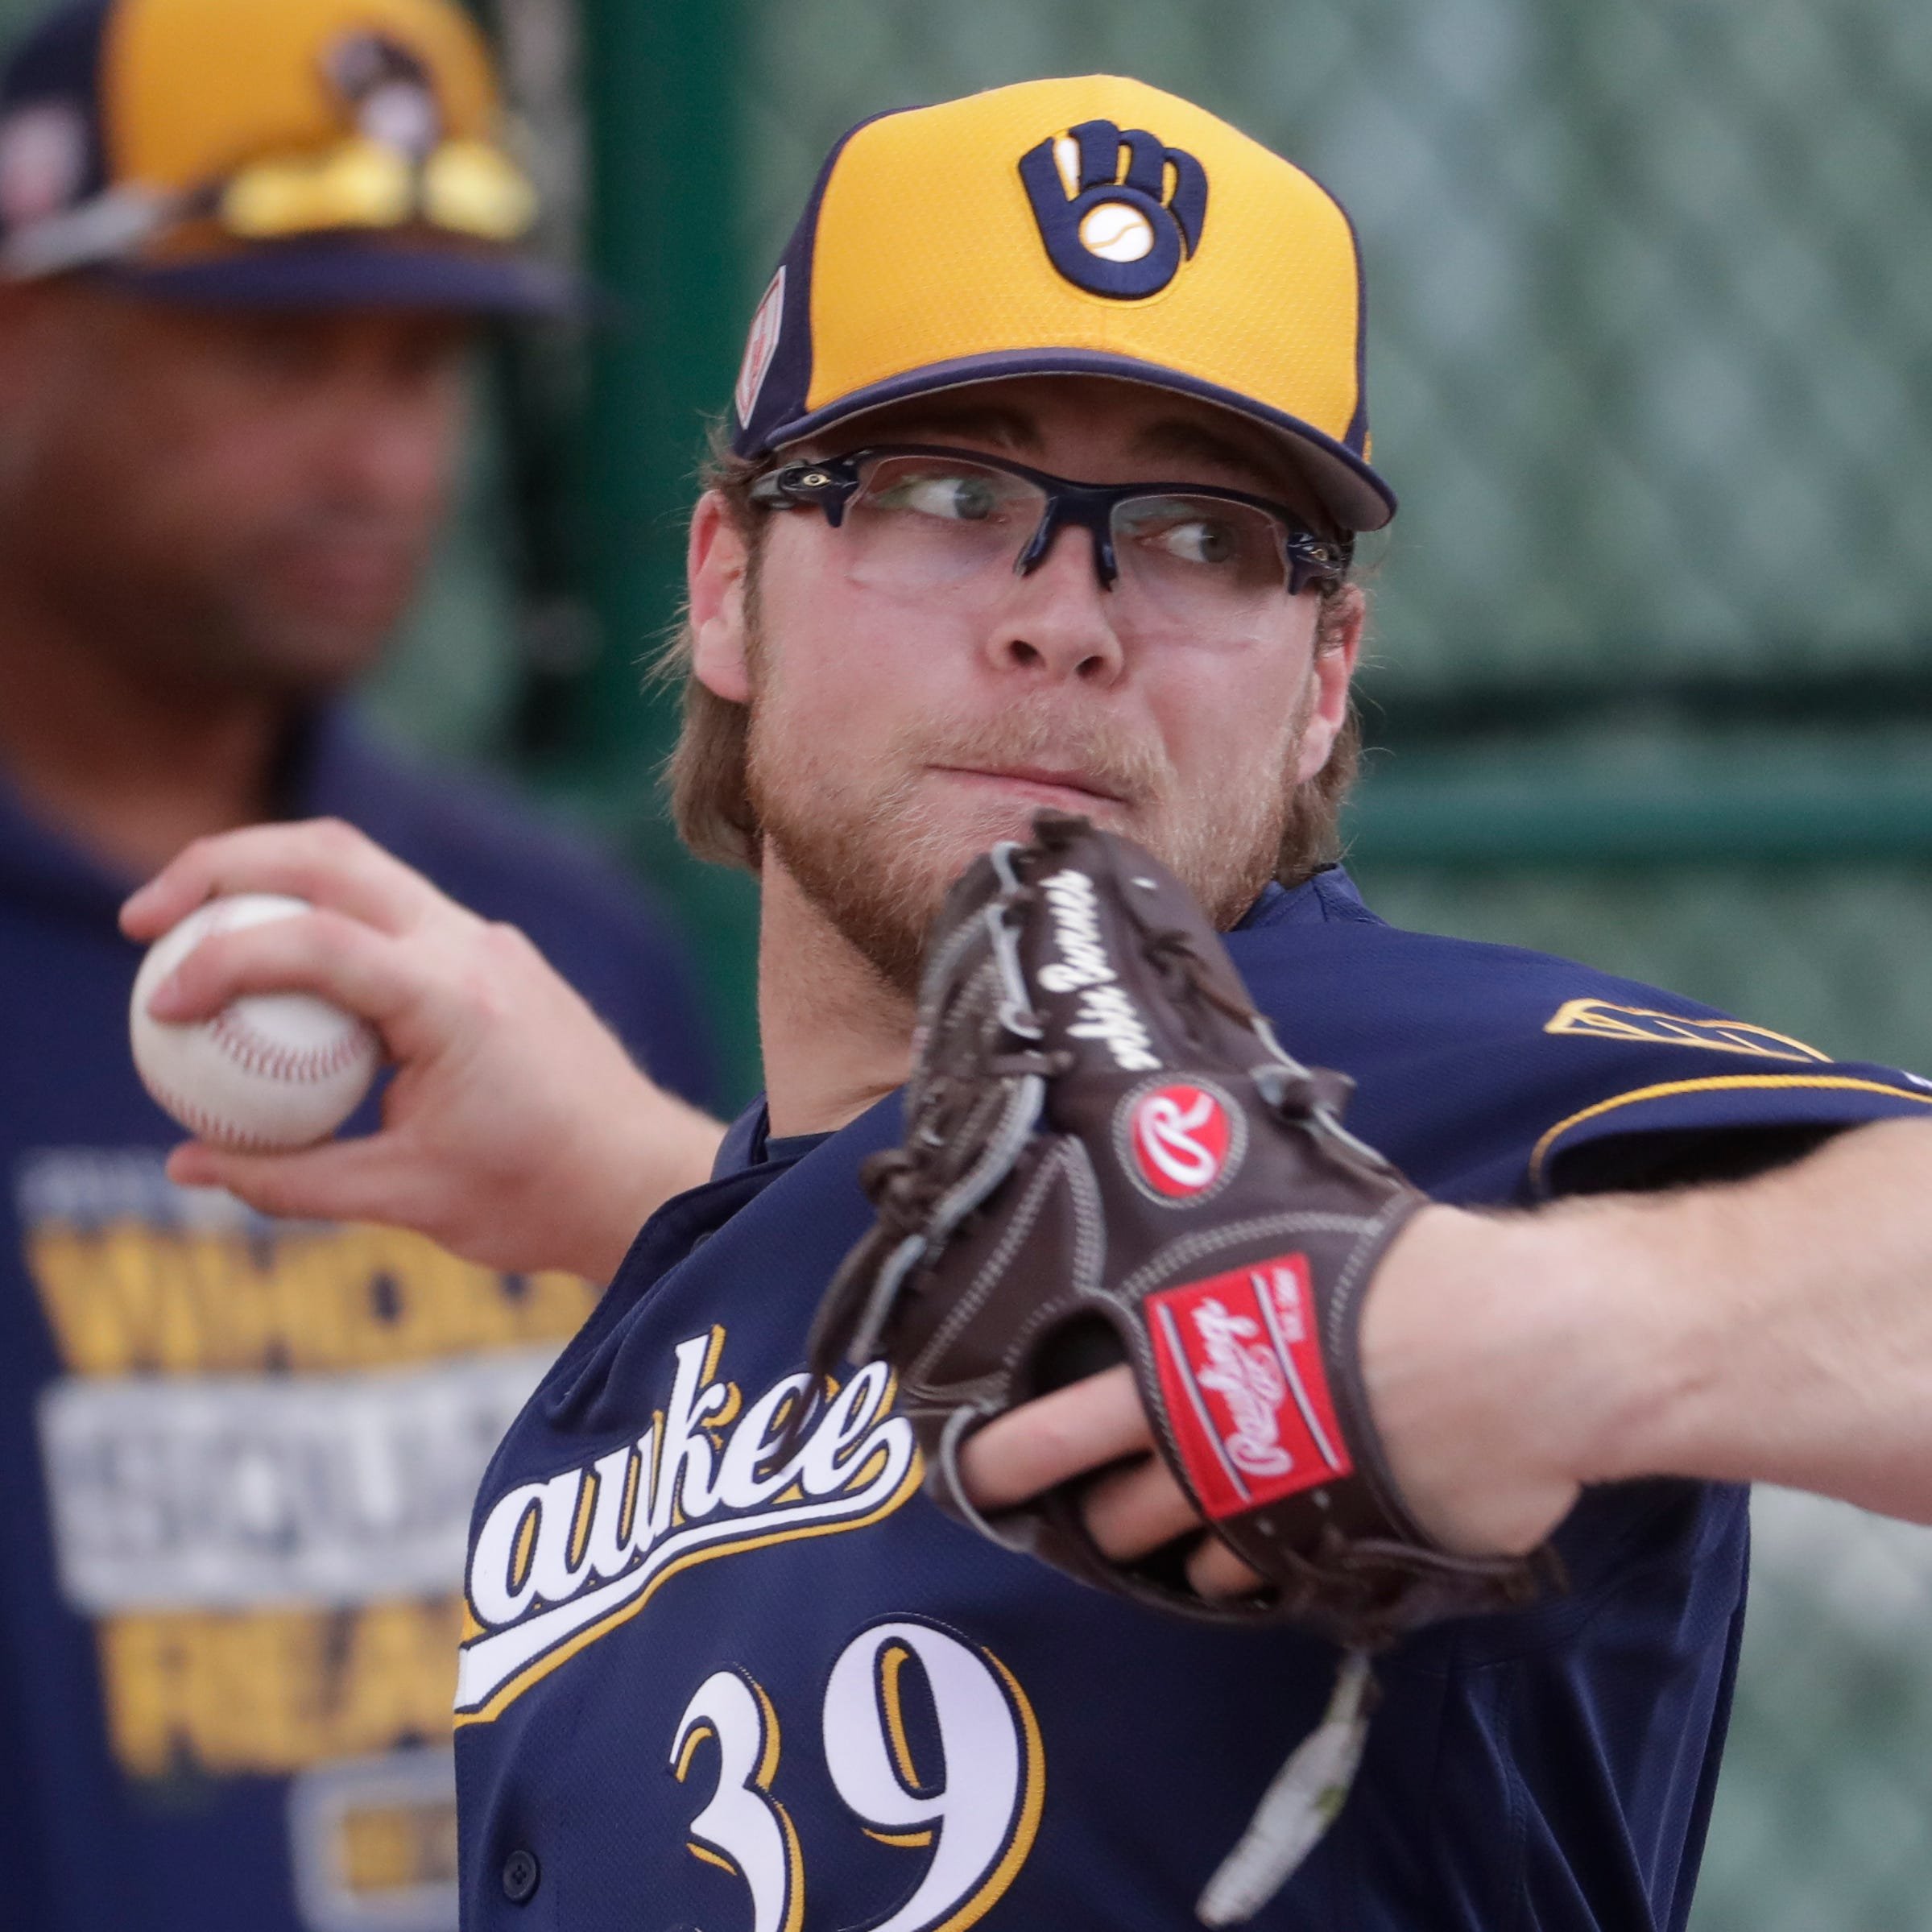 Corbin Burnes takes a positive first step in his Cactus League debut